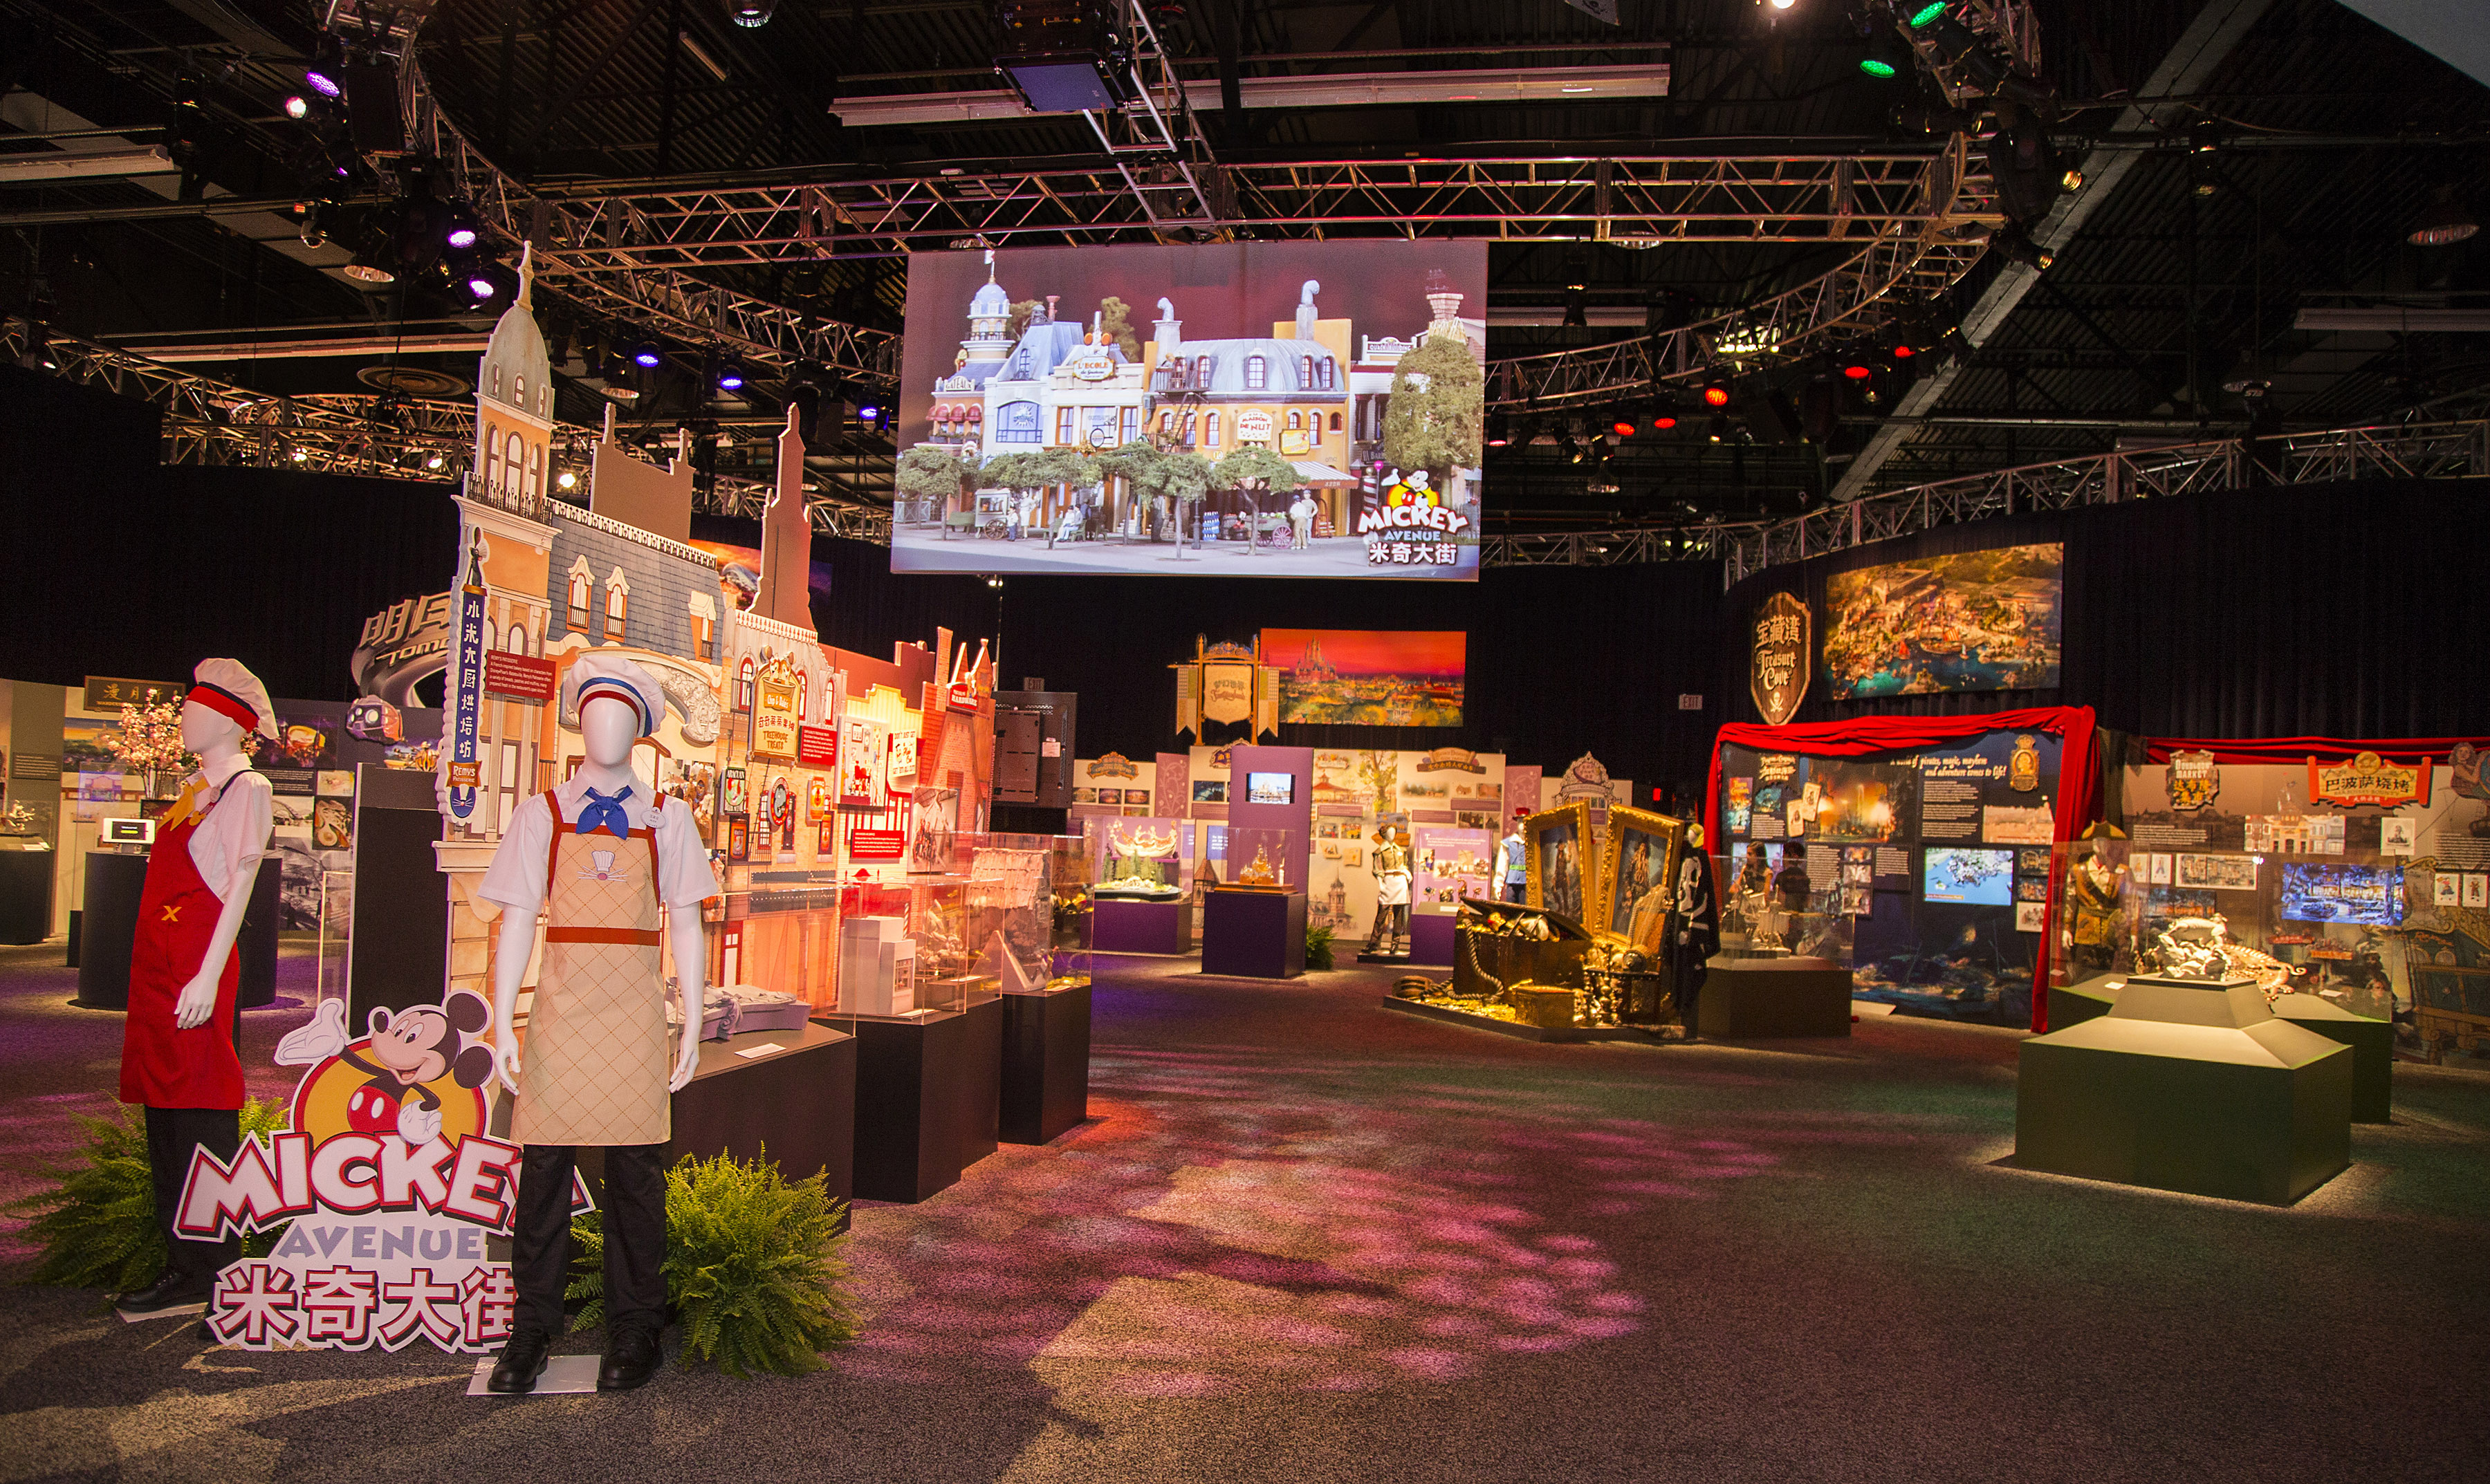 The Walt Disney Parks and Resorts show floor pavilion